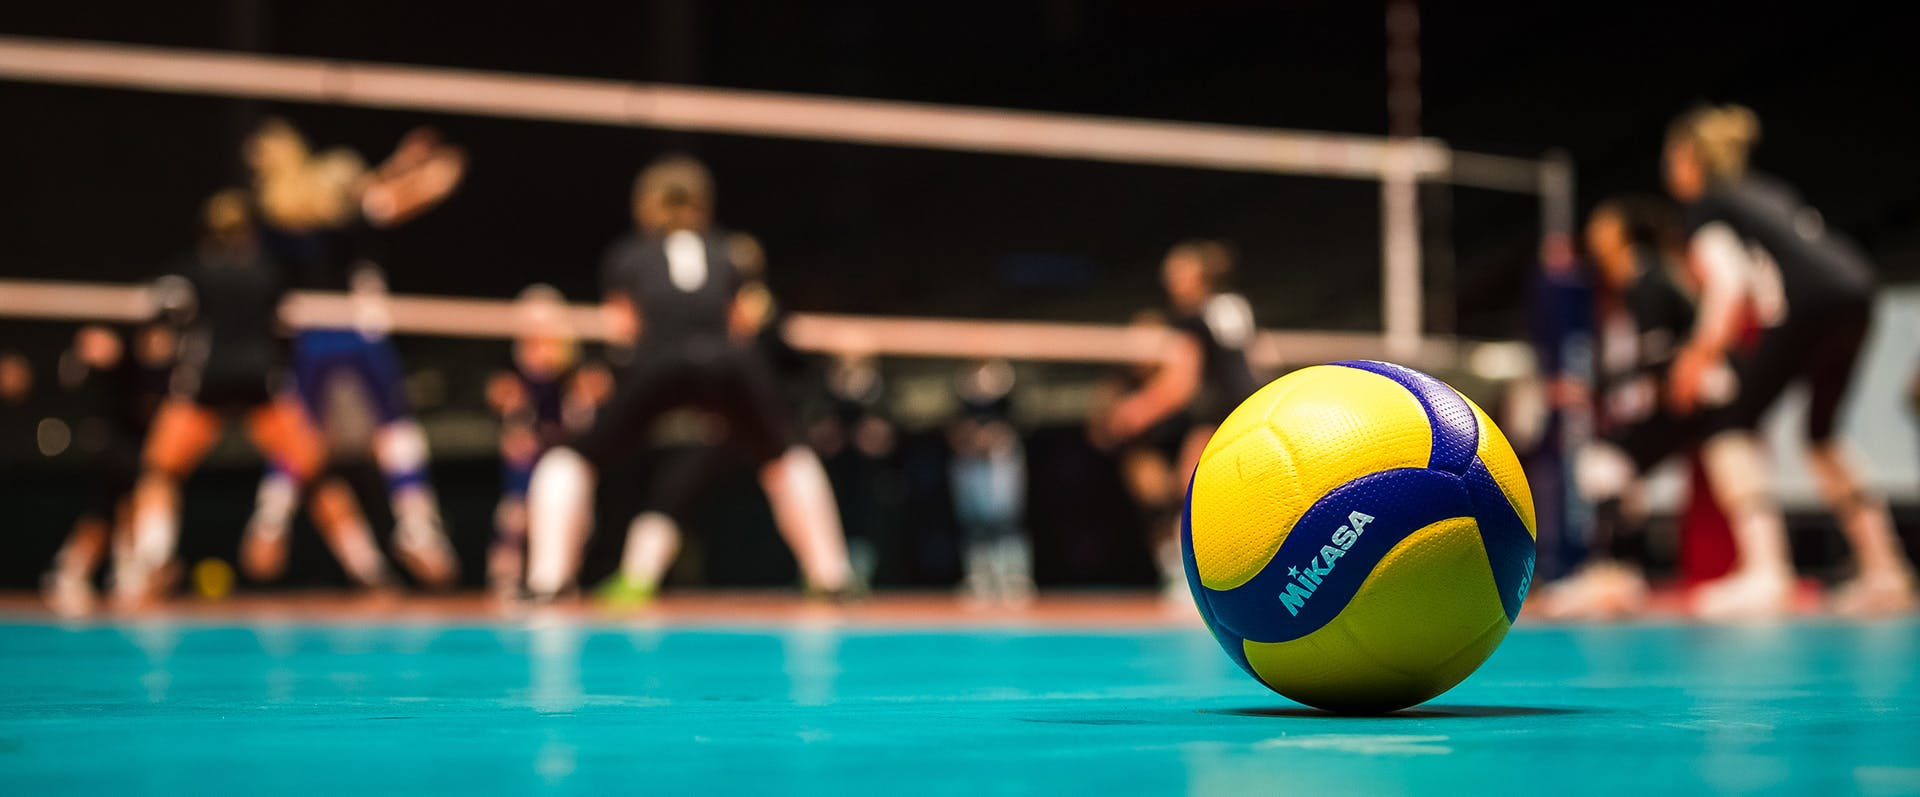 Mikasa ball on the court.